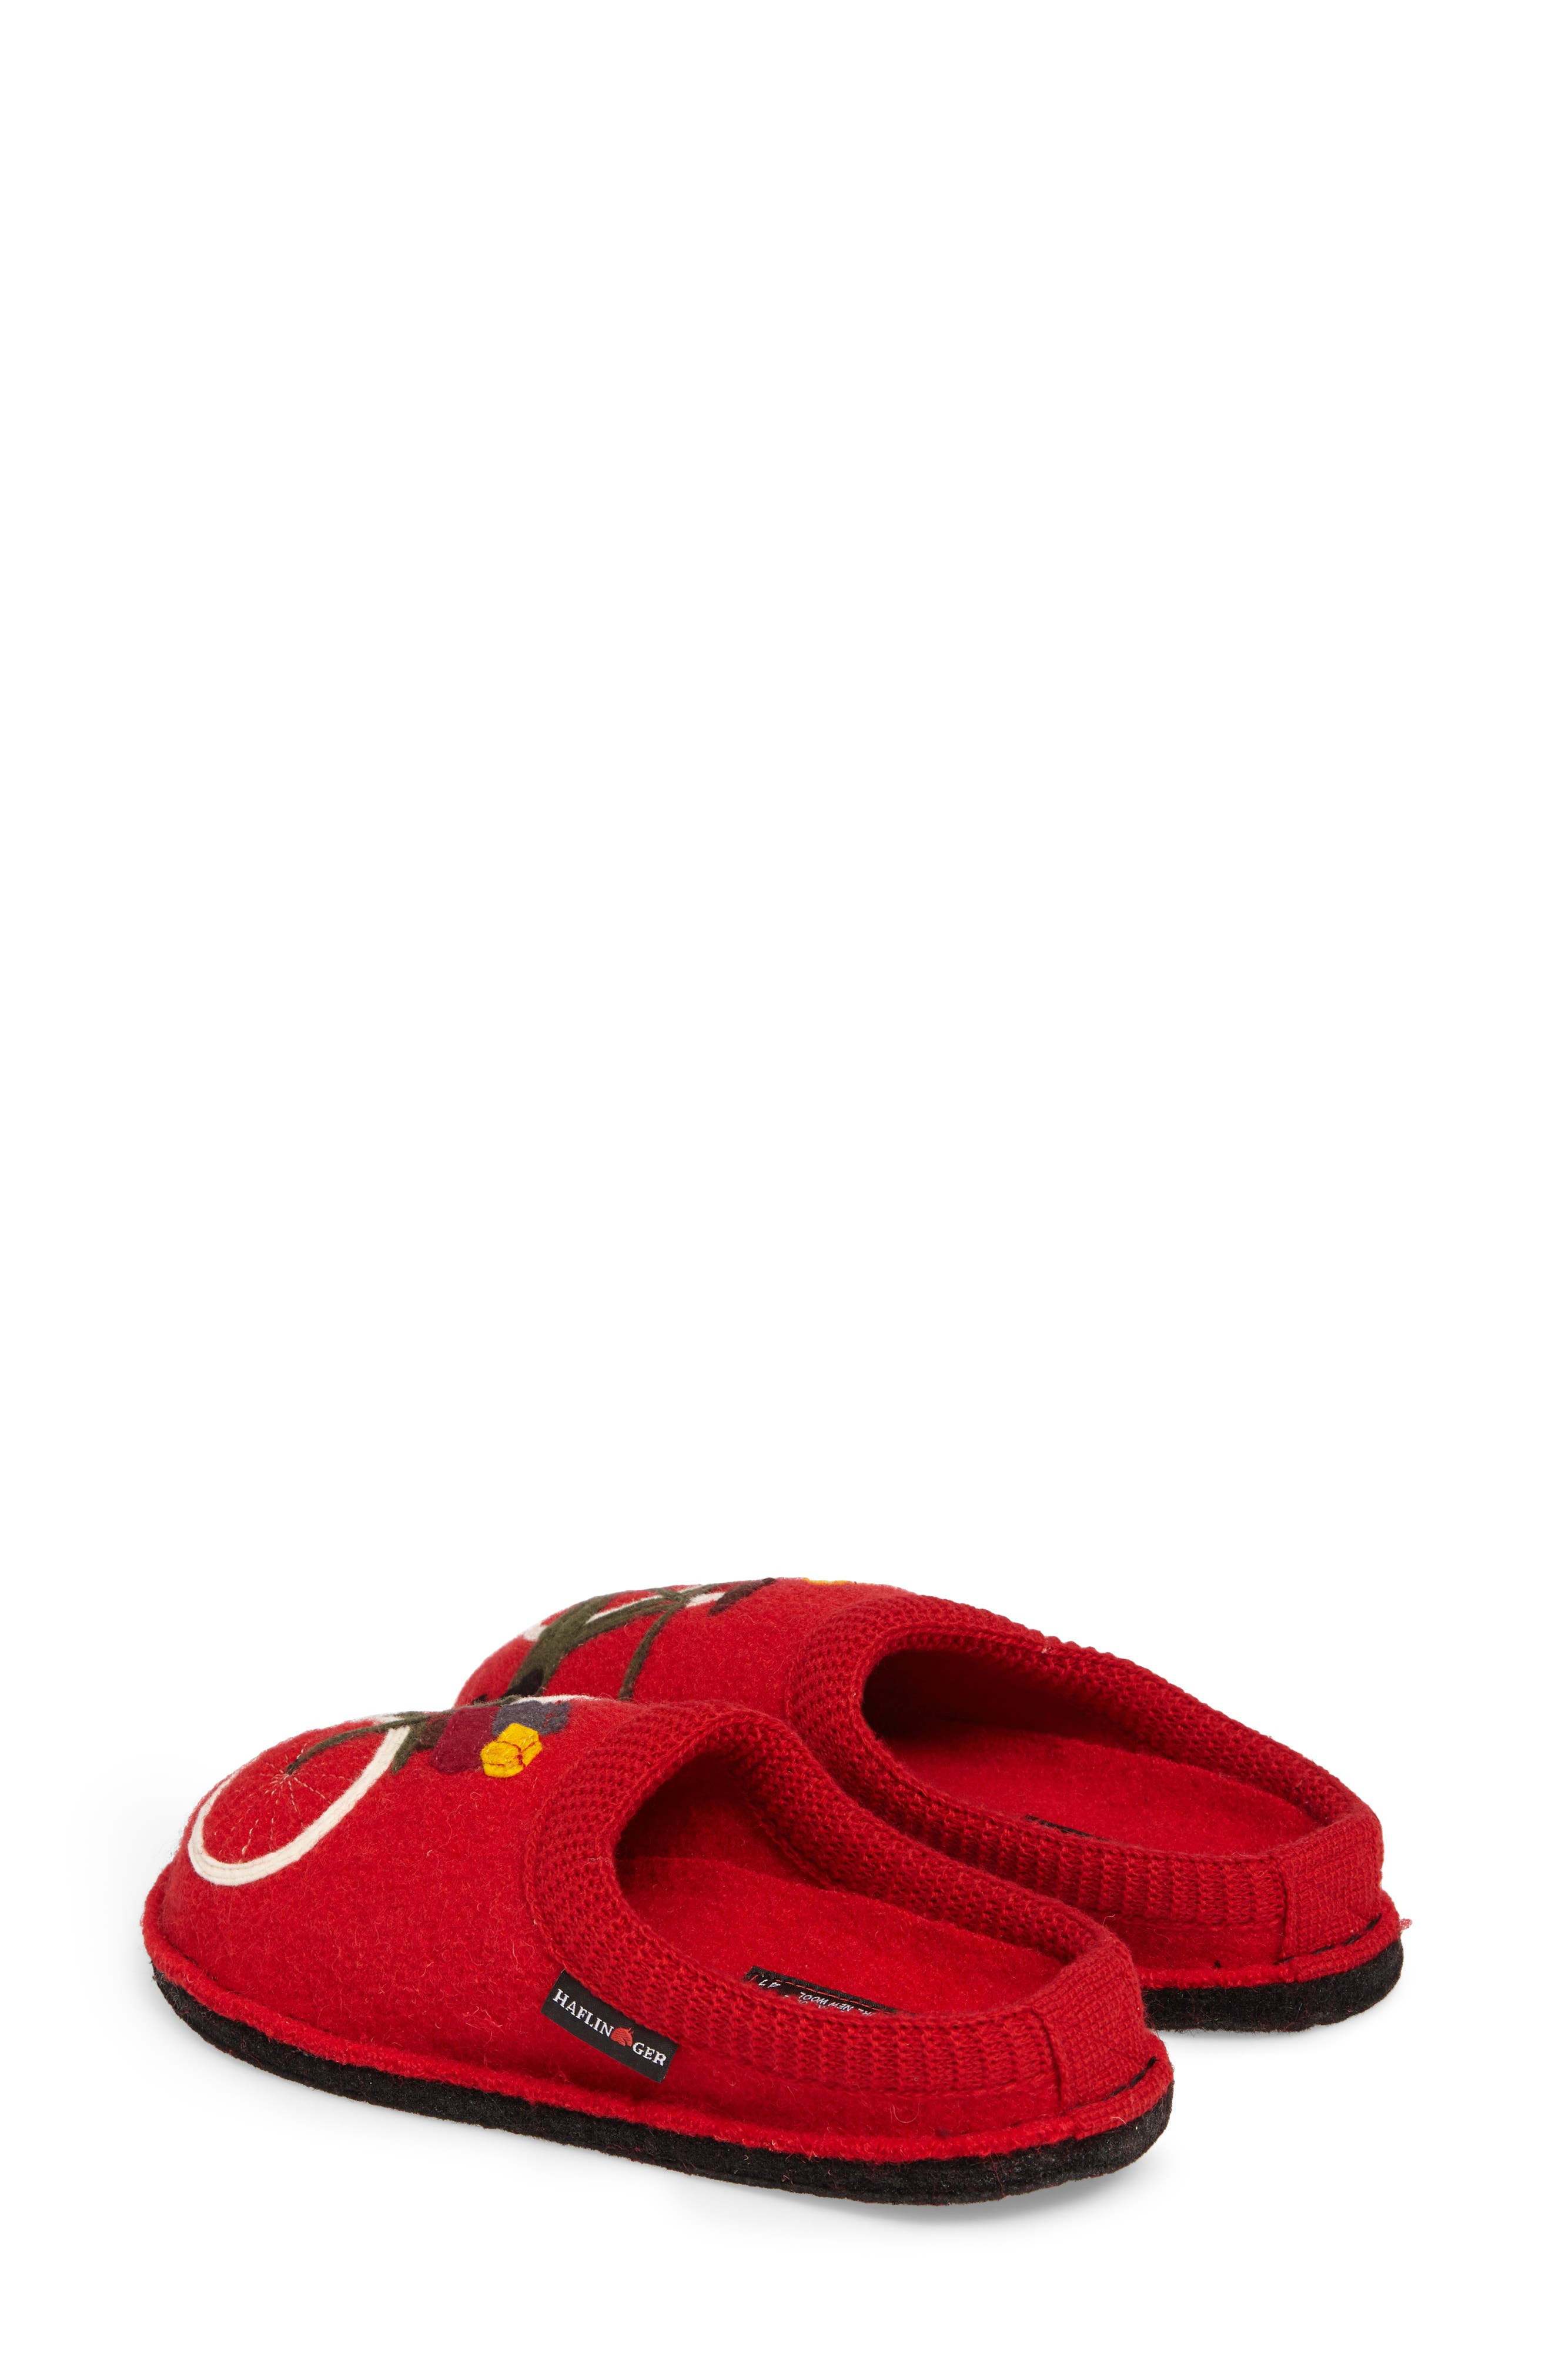 Bicycle Slipper,                             Alternate thumbnail 2, color,                             Bicycle Red Wool